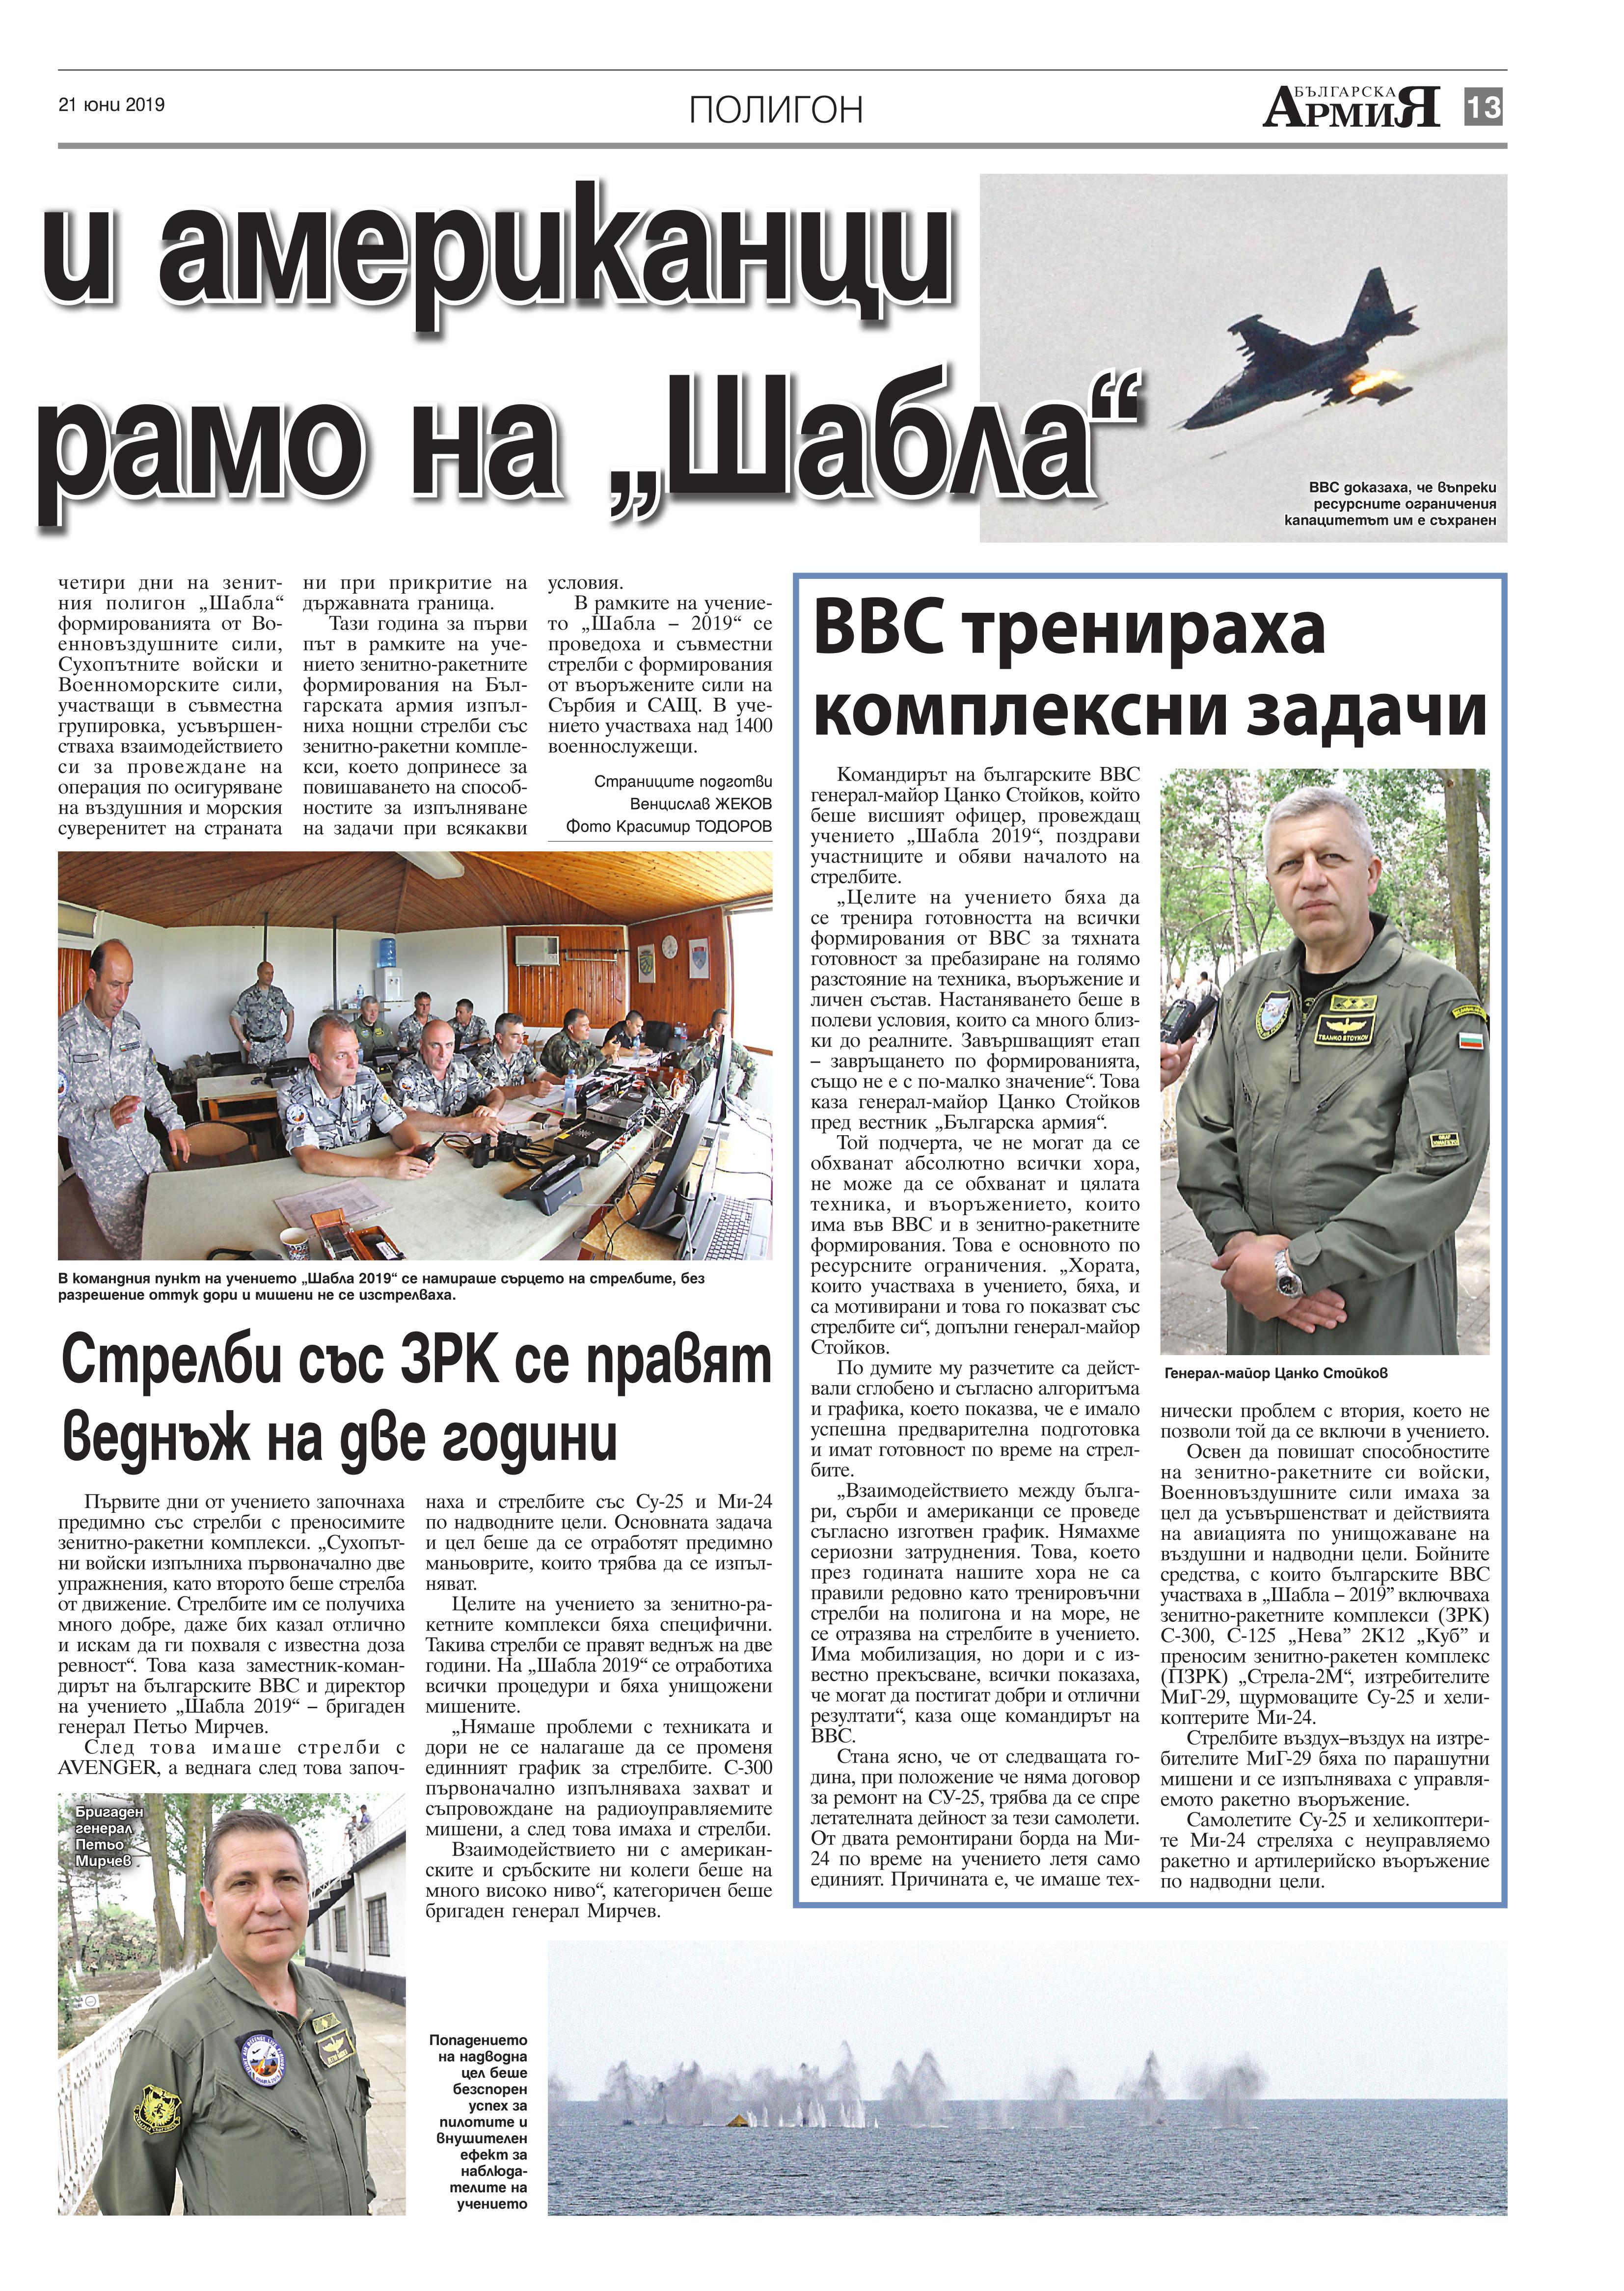 https://www.armymedia.bg/wp-content/uploads/2015/06/13.page1_-100.jpg